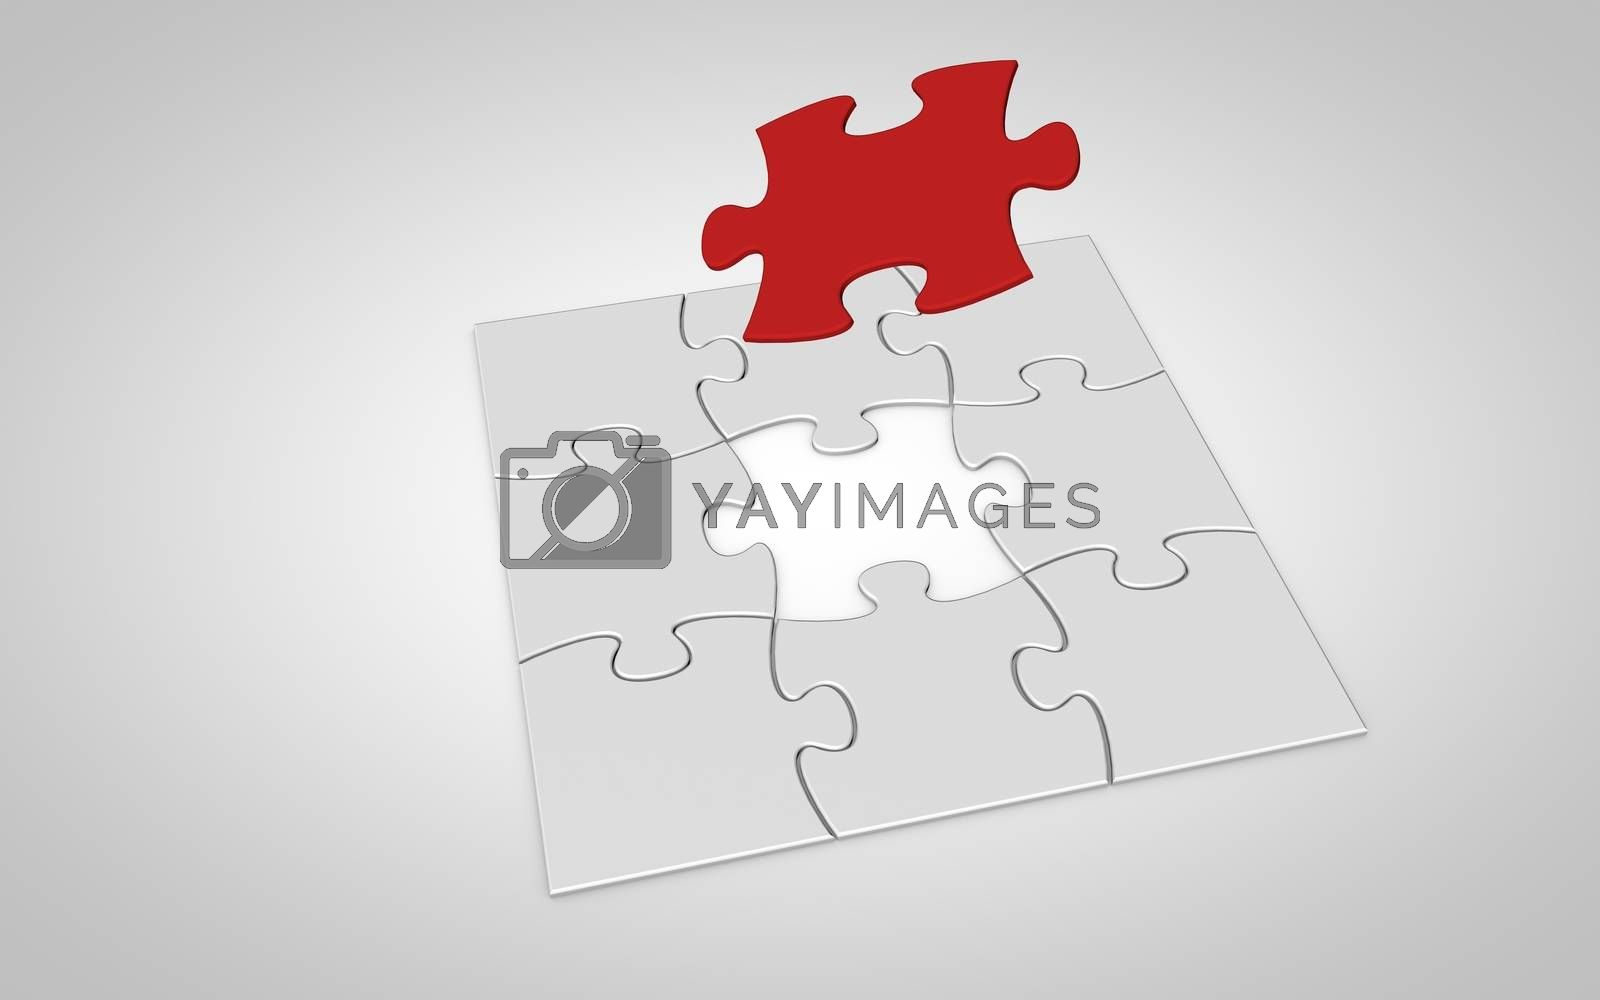 Final puzzle piece falls into place by clusterx